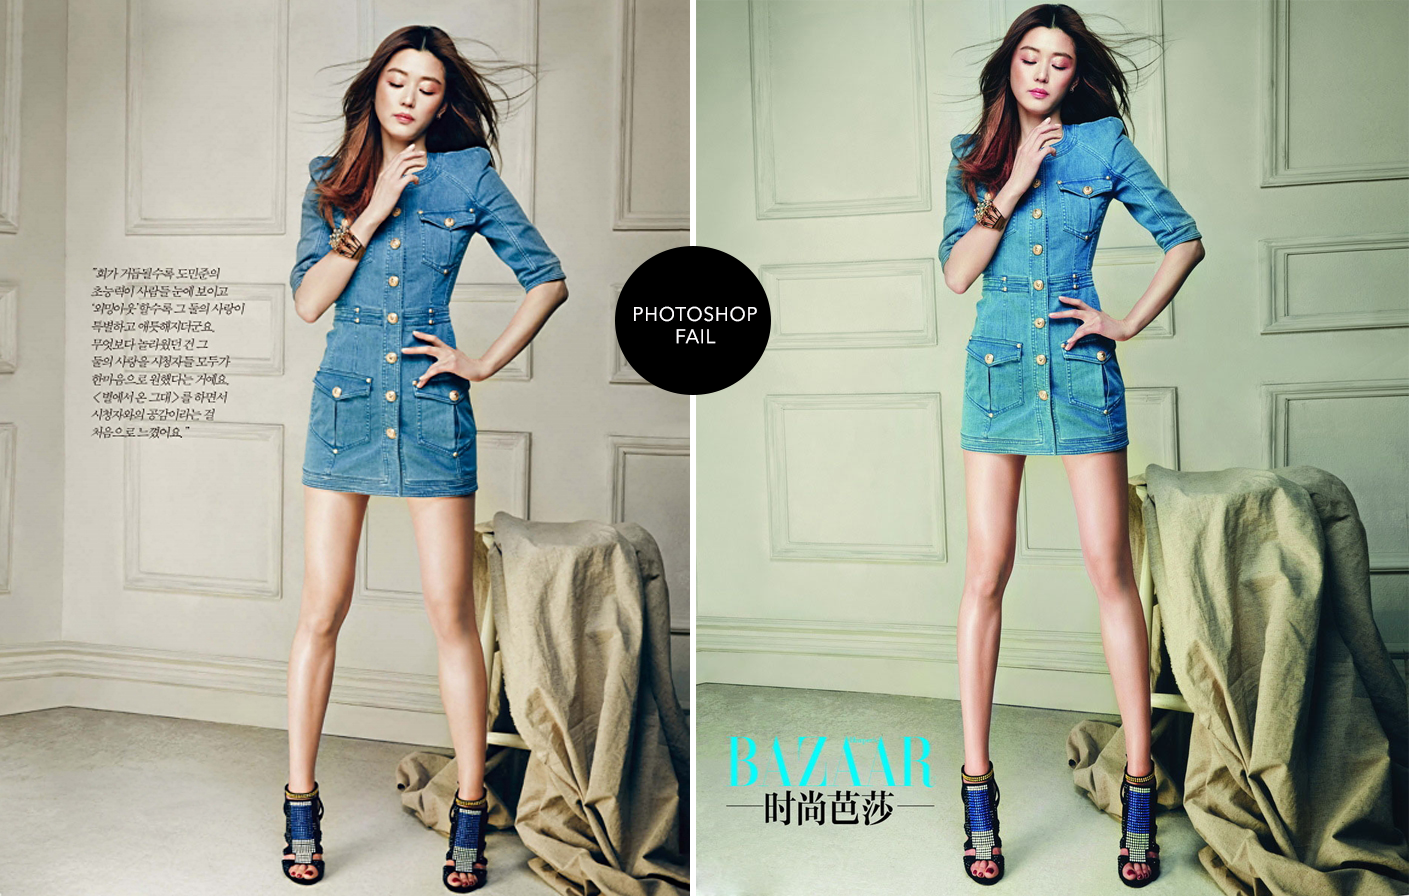 Jun Ji Hyun Photoshop